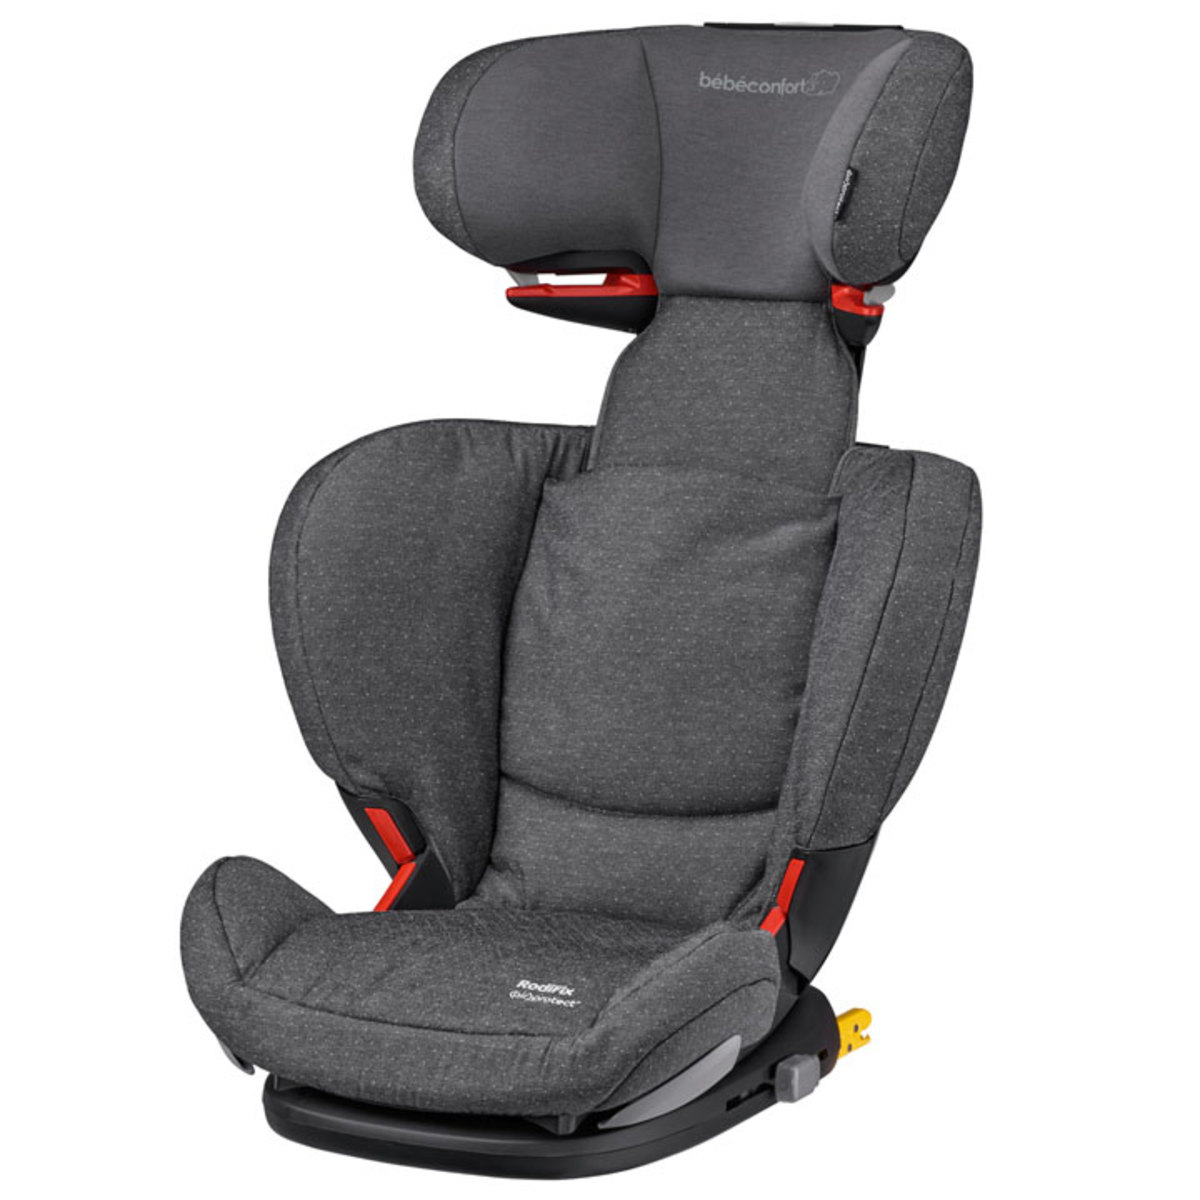 b b confort si ge auto rodifix air protect isofix groupe 2 3 sparkling grey si ge auto et. Black Bedroom Furniture Sets. Home Design Ideas